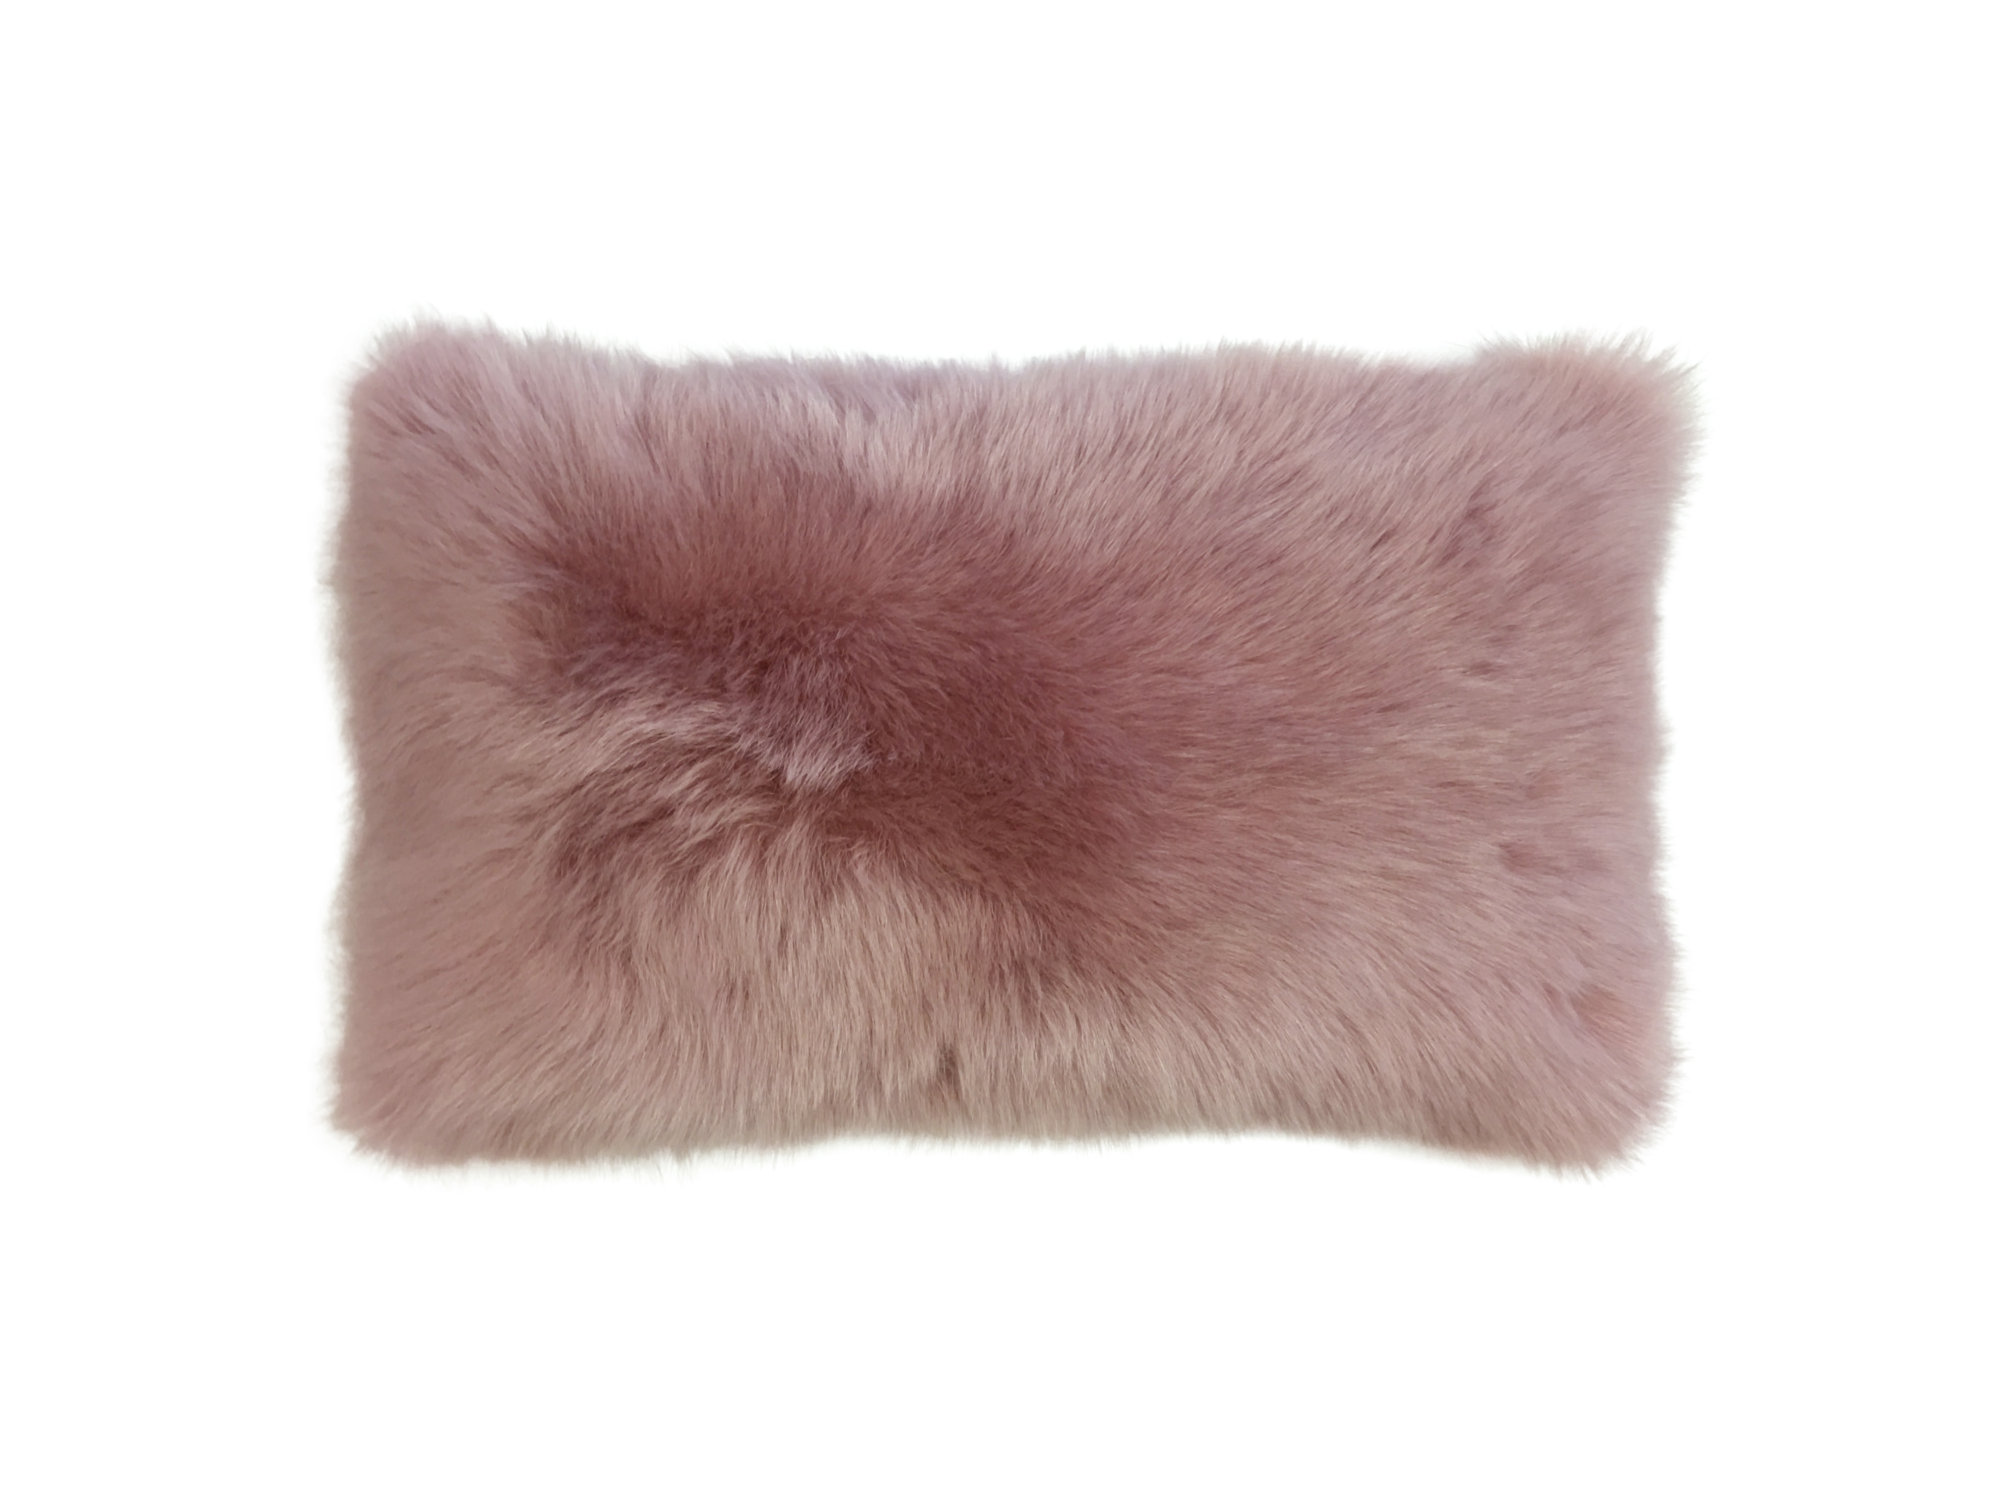 Shearling Pillow-D.Pink-30x50cm-SPDPINS3143050 - ANVOGG FEEL SHEARLING | ANVOGG